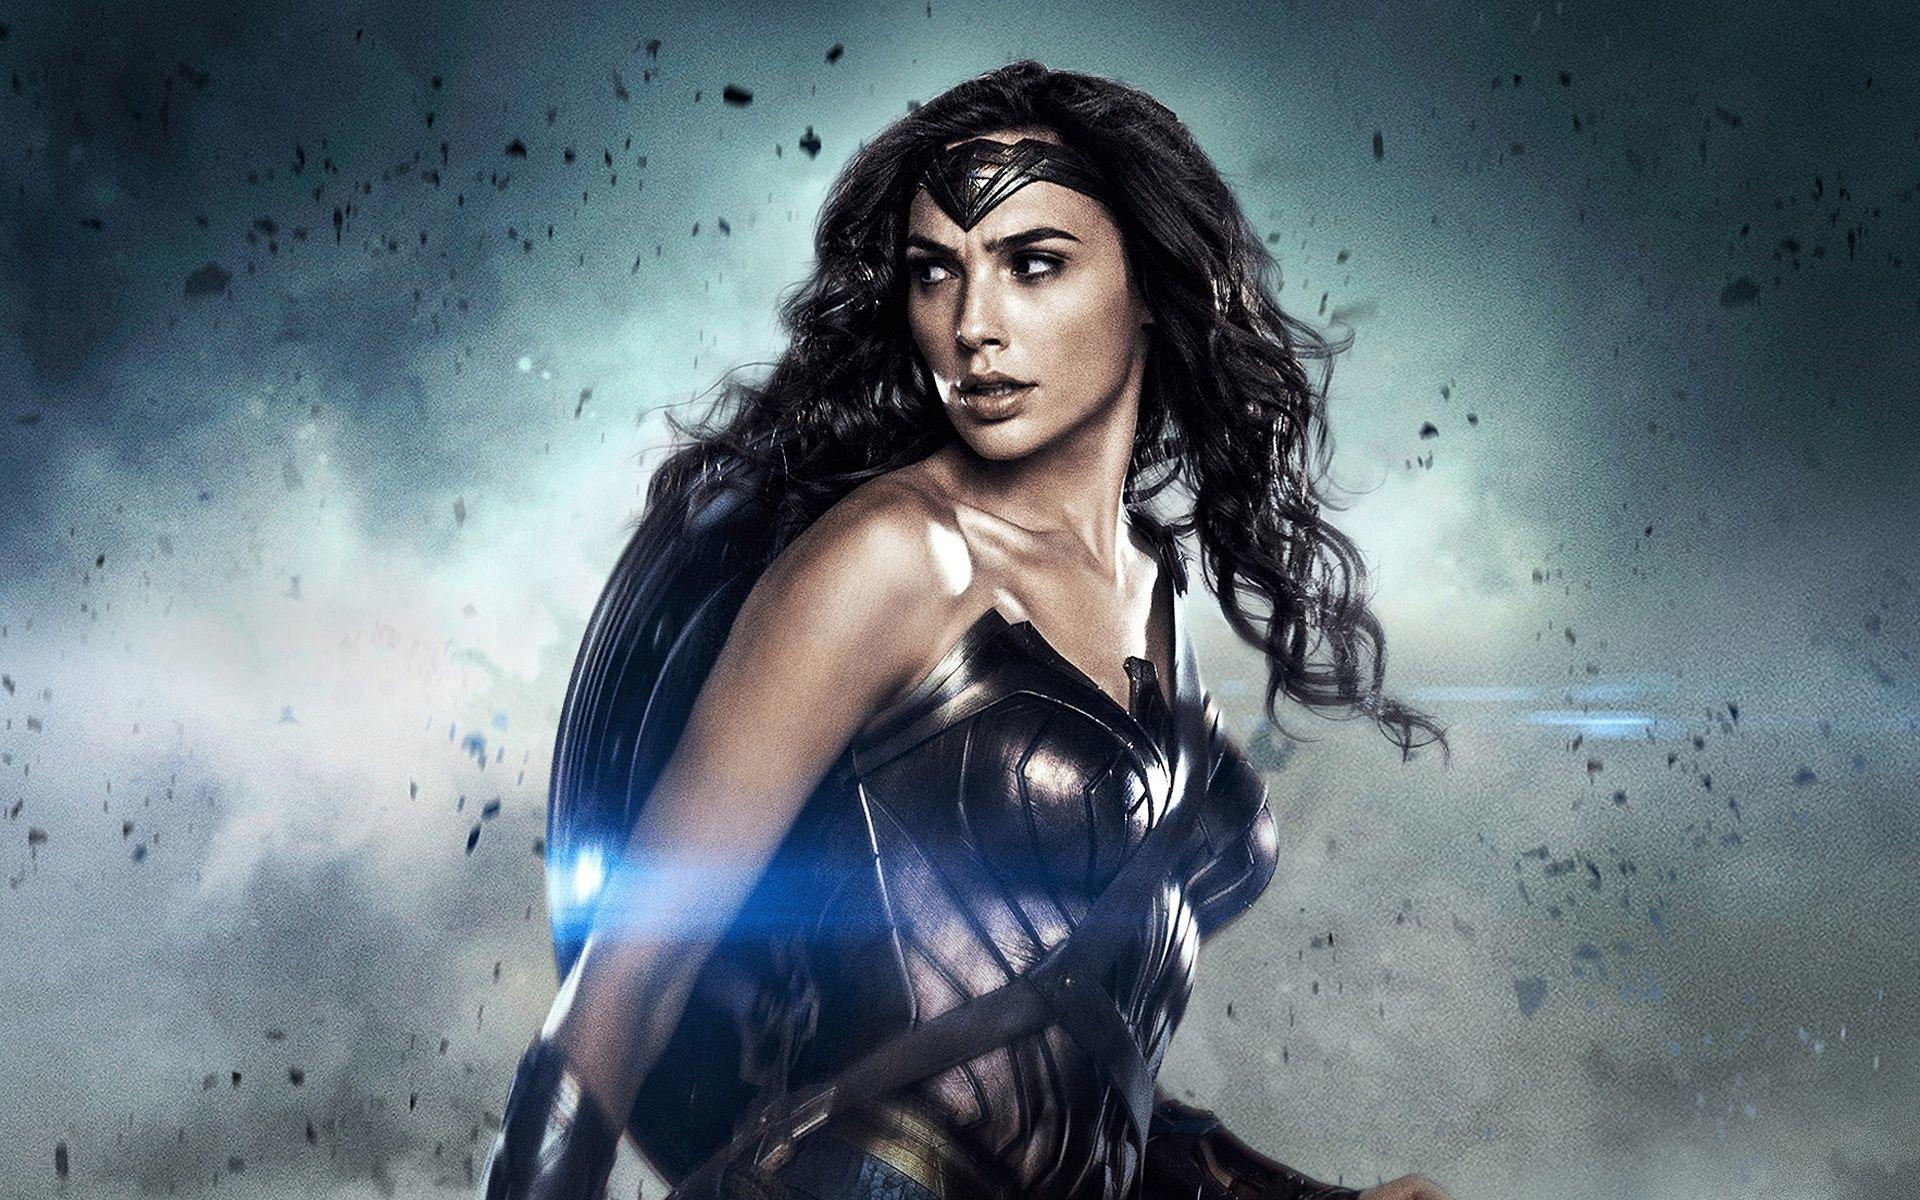 Wonder Woman 84: Retro Movie Poster Influenced by Rocky III is